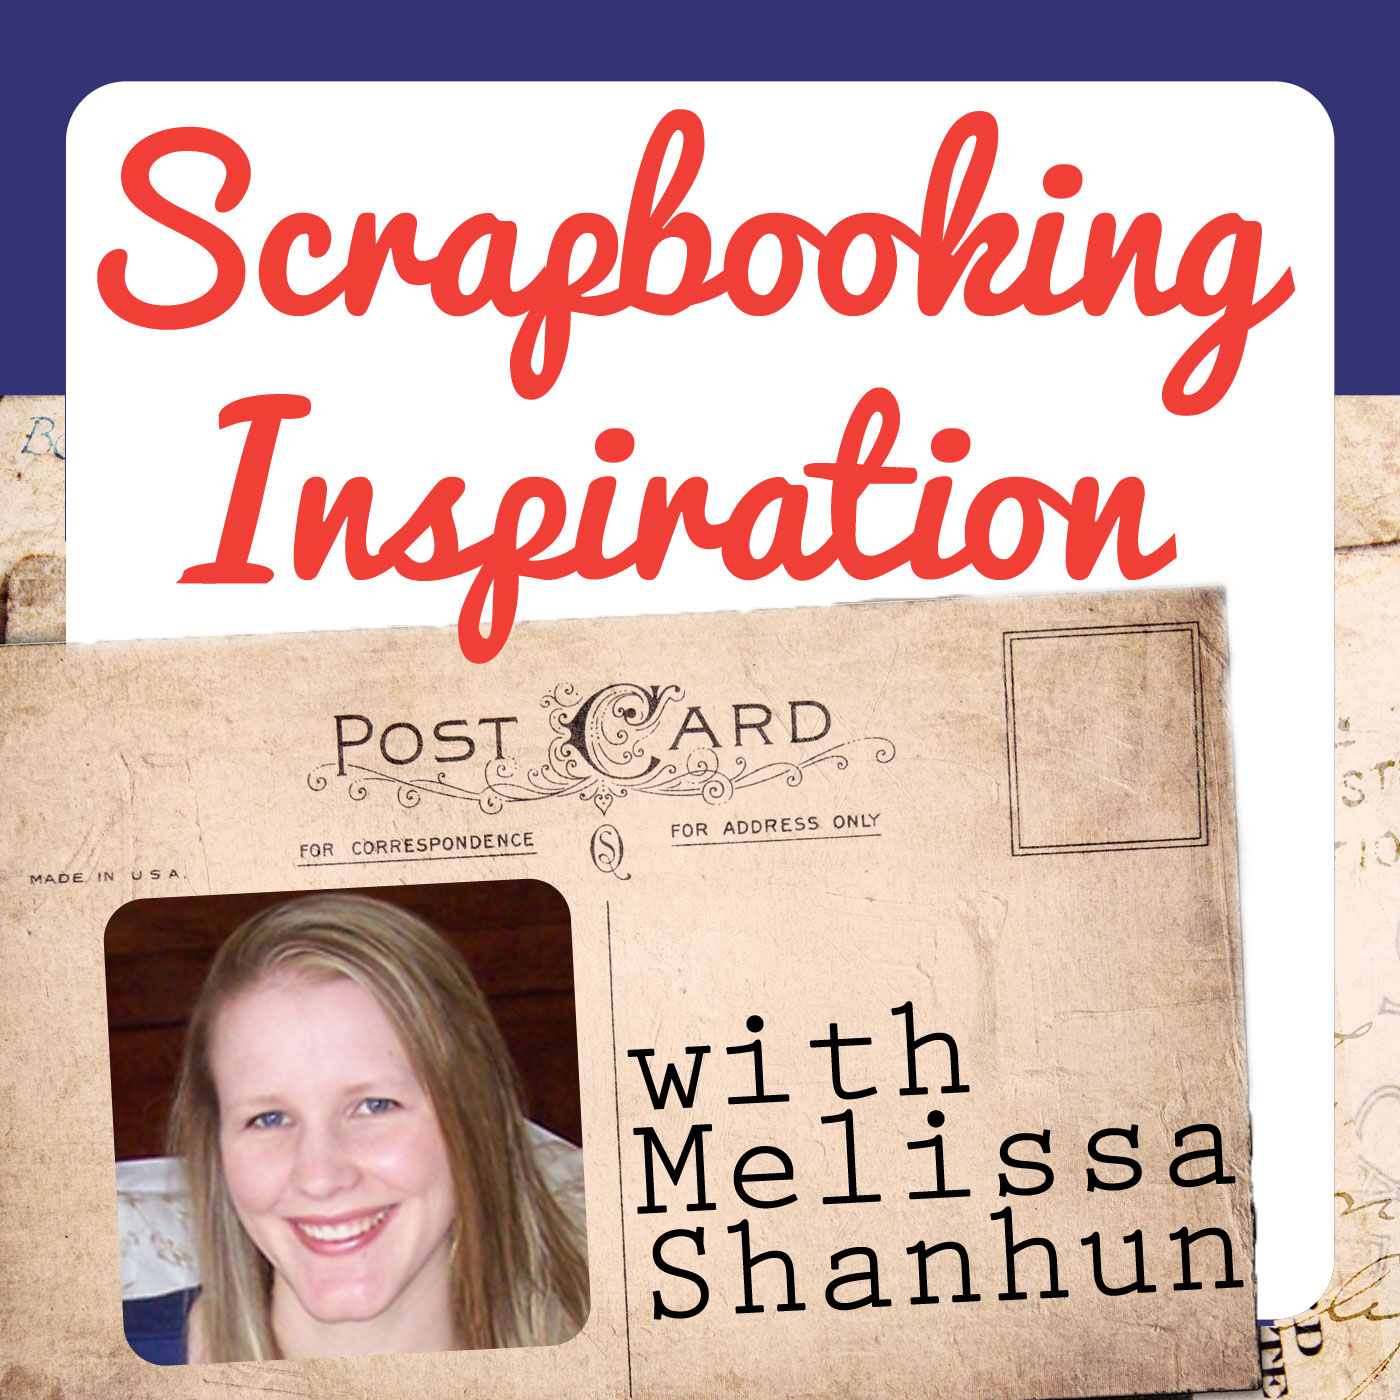 Scrapbooking Inspiration: Digital Scrapbooking HQ